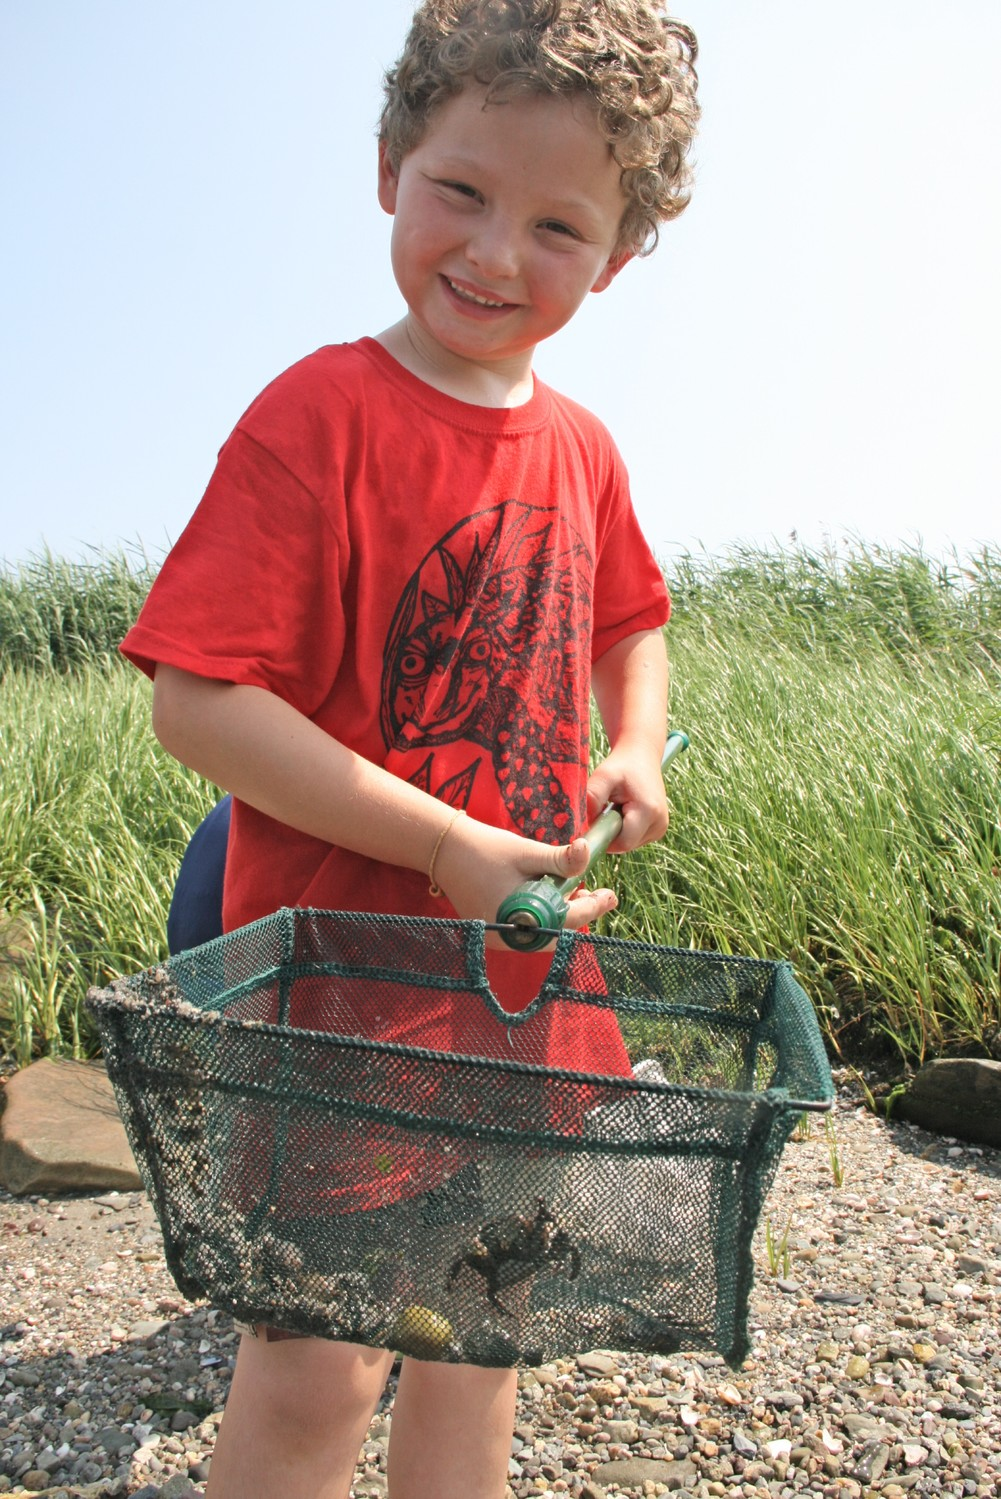 Dirty fingers and wet toes mean summer fun for kids!  Grab a net and join Audubon in the wetlands, fields and shore as we search for critters both large and small.